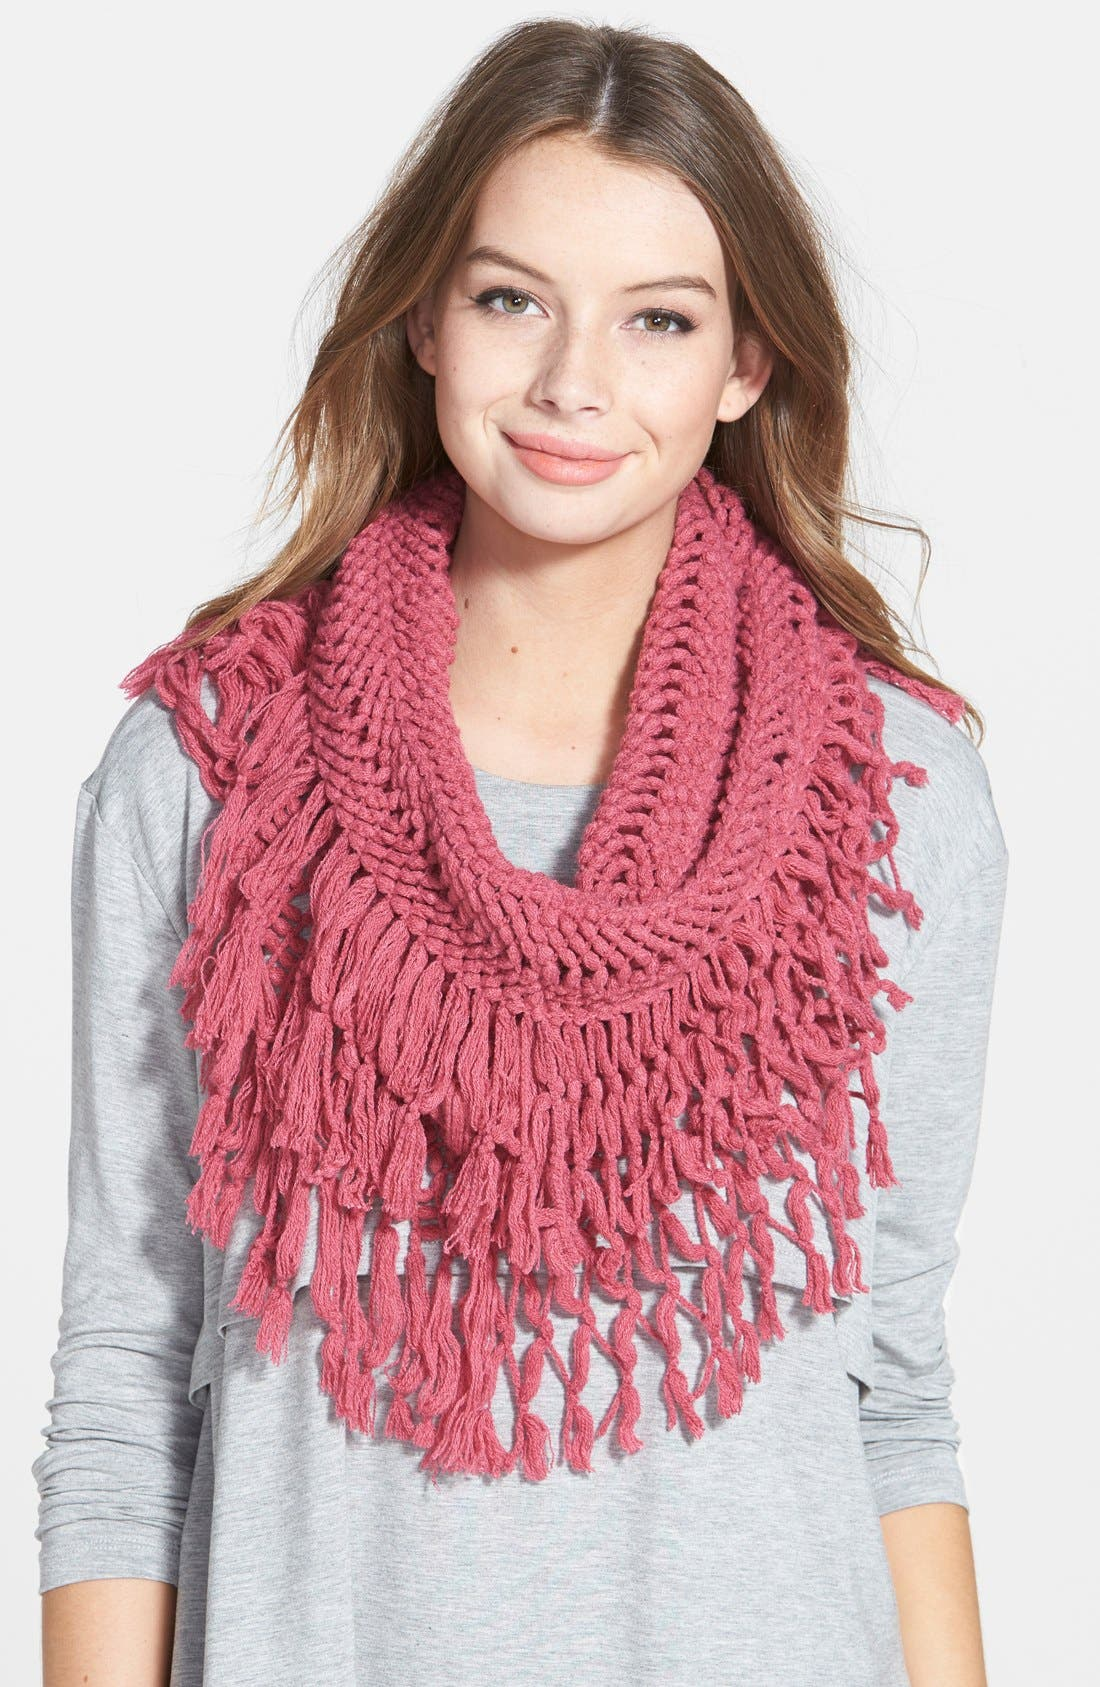 Main Image - BP. Knotted Fringe Knit Infinity Scarf